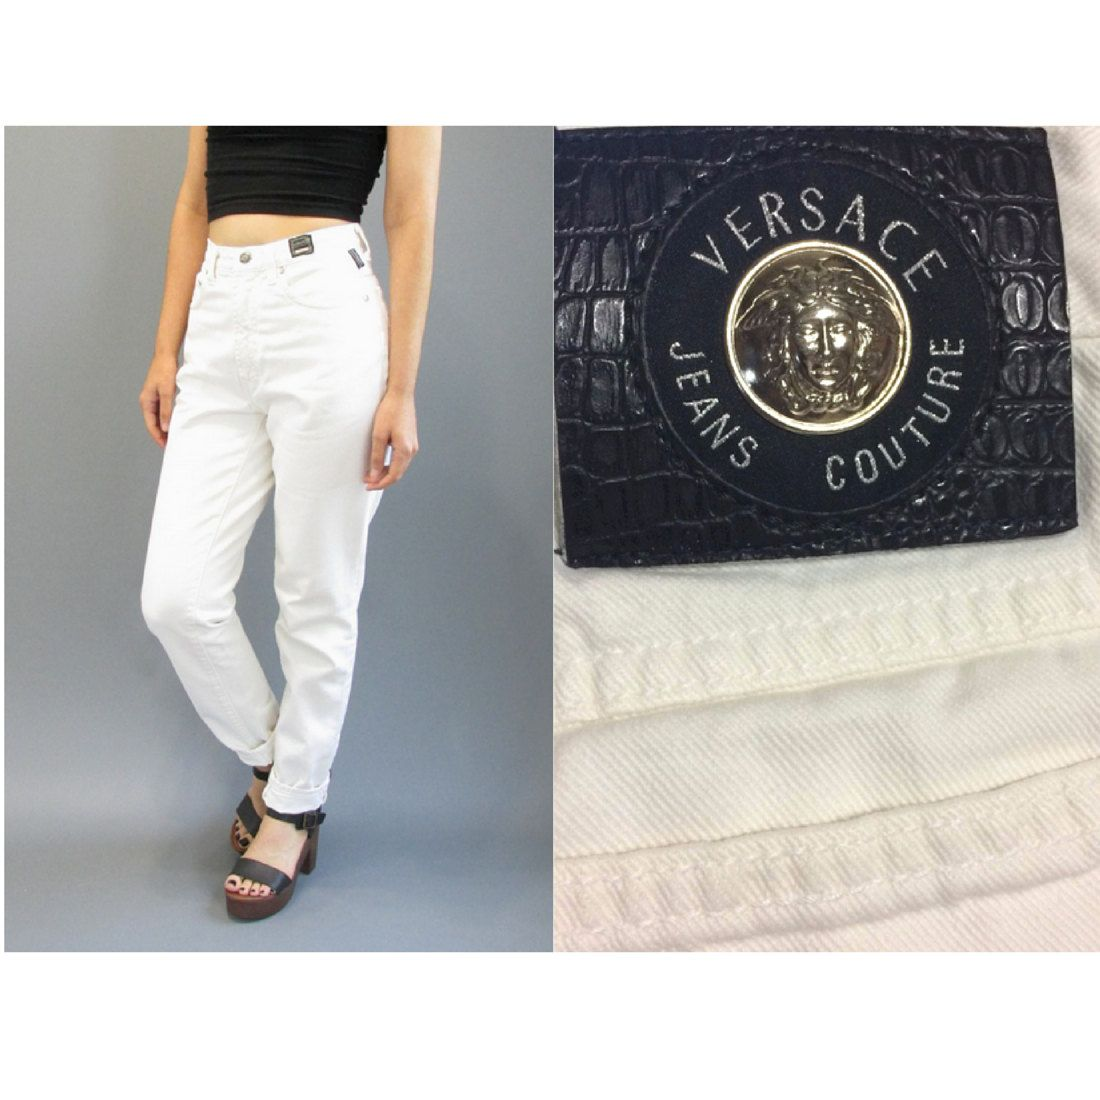 ae139d5a8d1de New to ColonyVtg on Etsy  Vintage 80s Versace White Jeans Size 27 28 Made  in Italy Vintage Versace Designer Jeans High Waisted Mom Jeans Size 28  Small ...